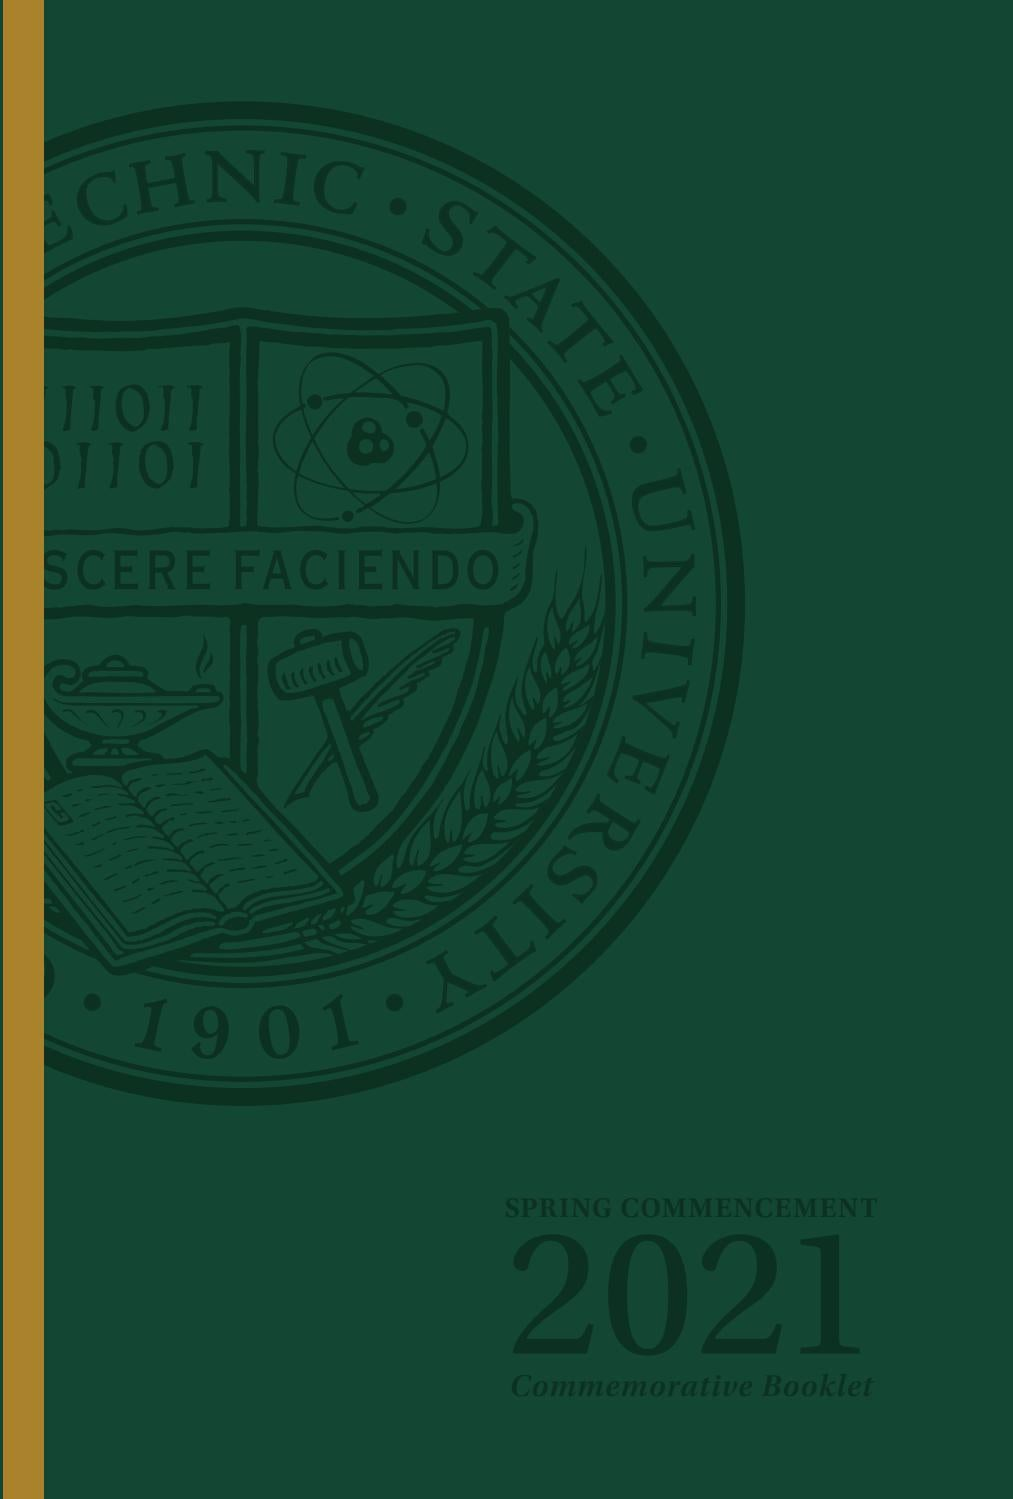 Cal Poly Spring Commencement 2021 Commemorative Booklet